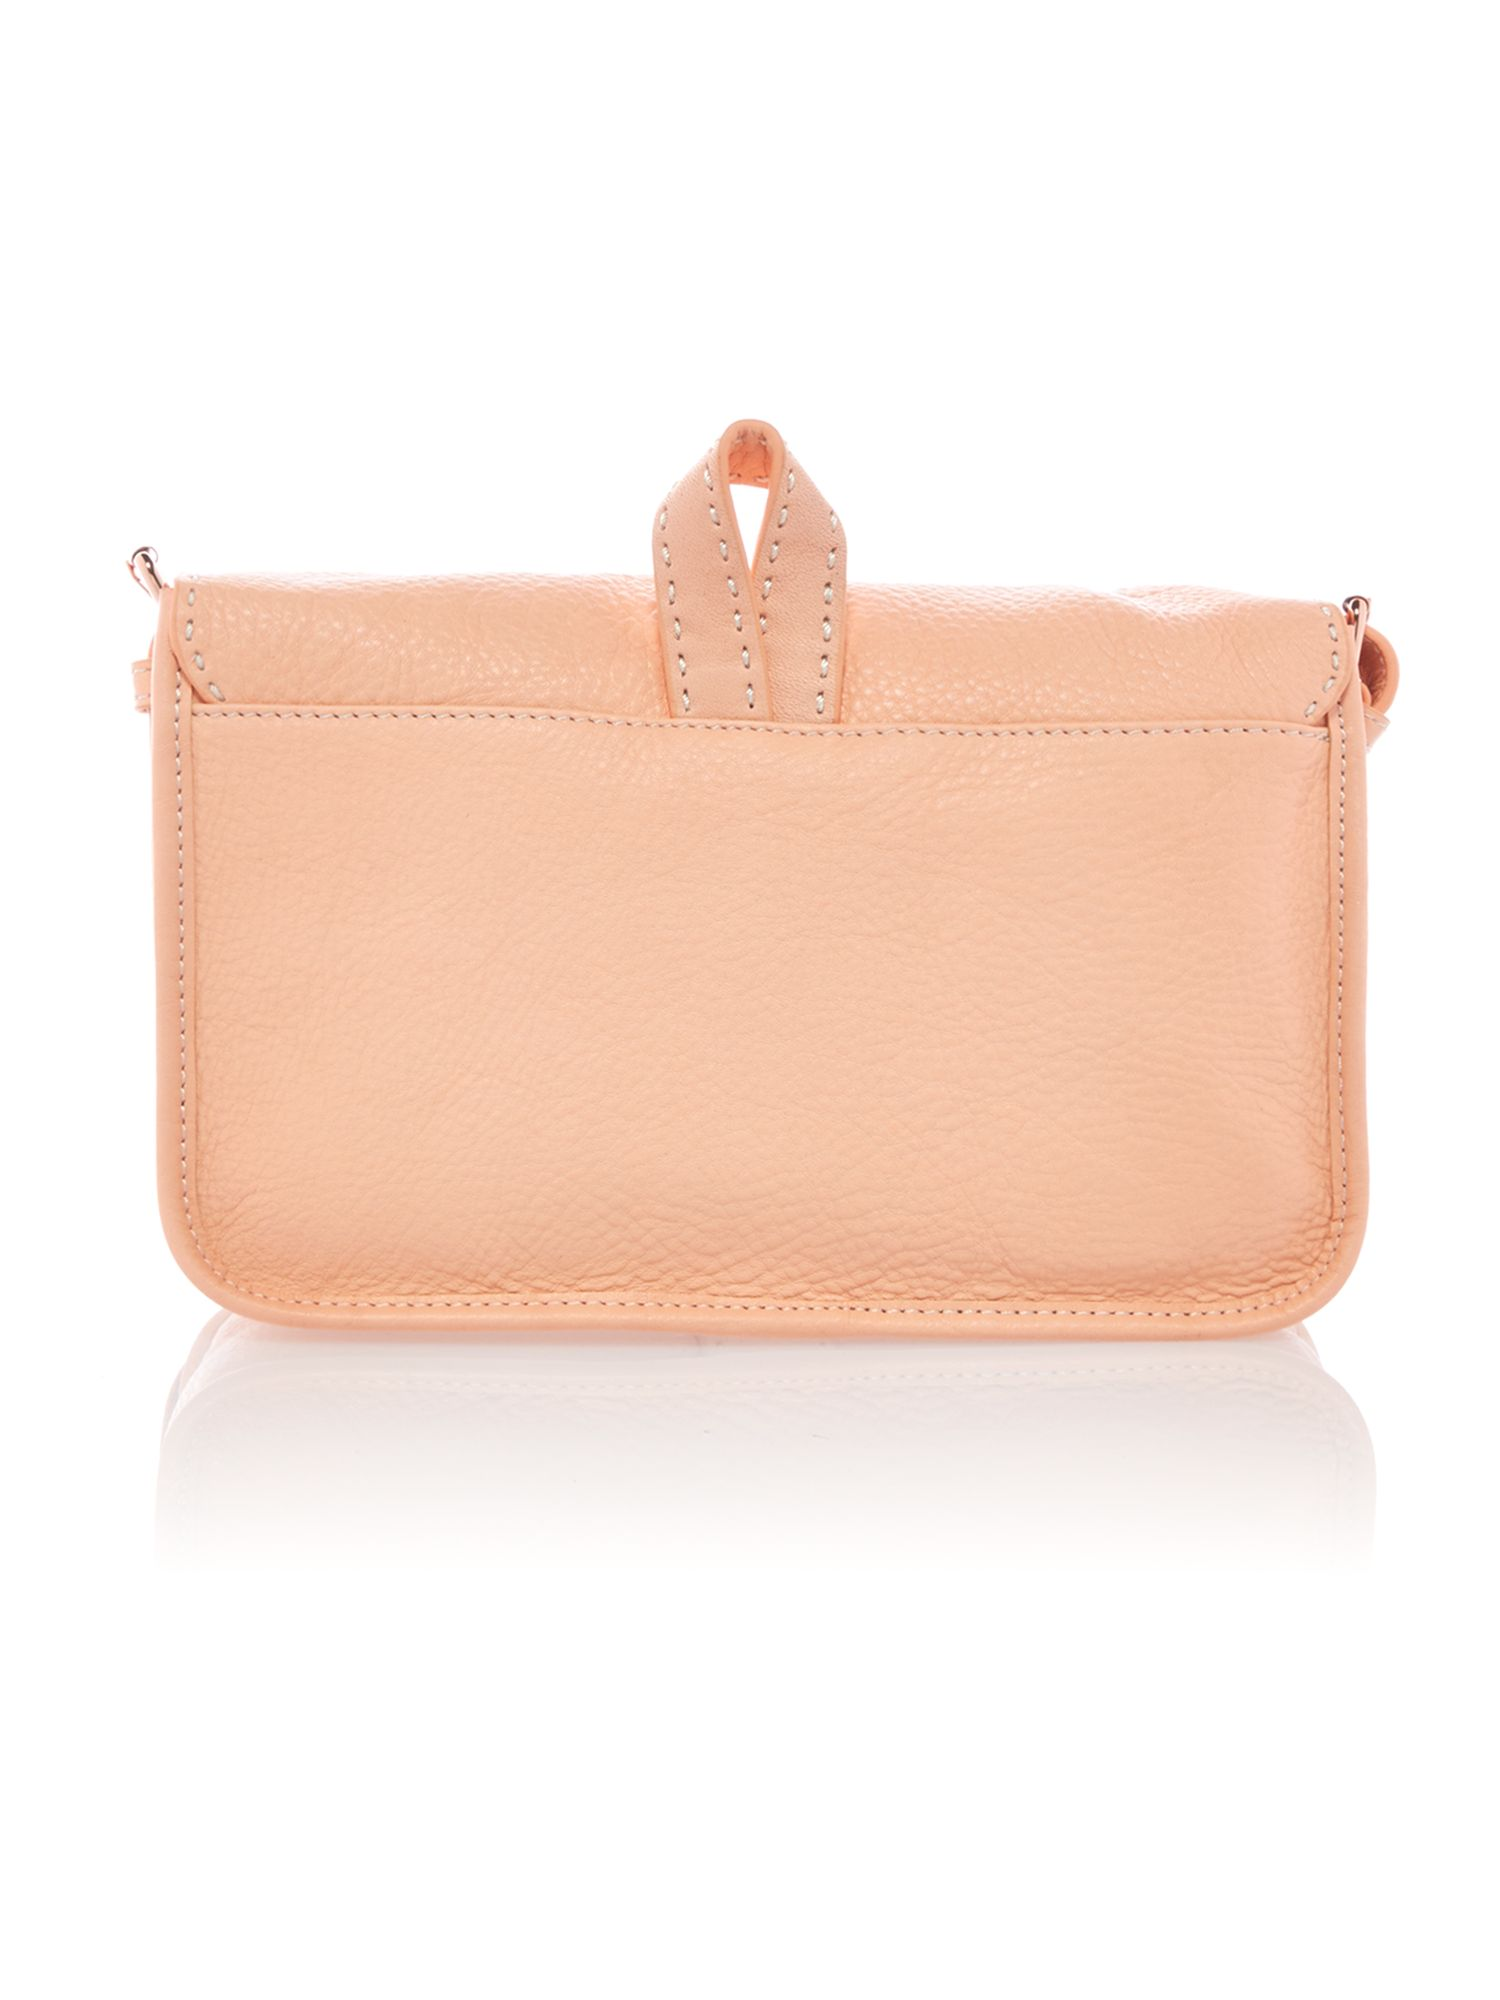 Medium orange leather cross body bag